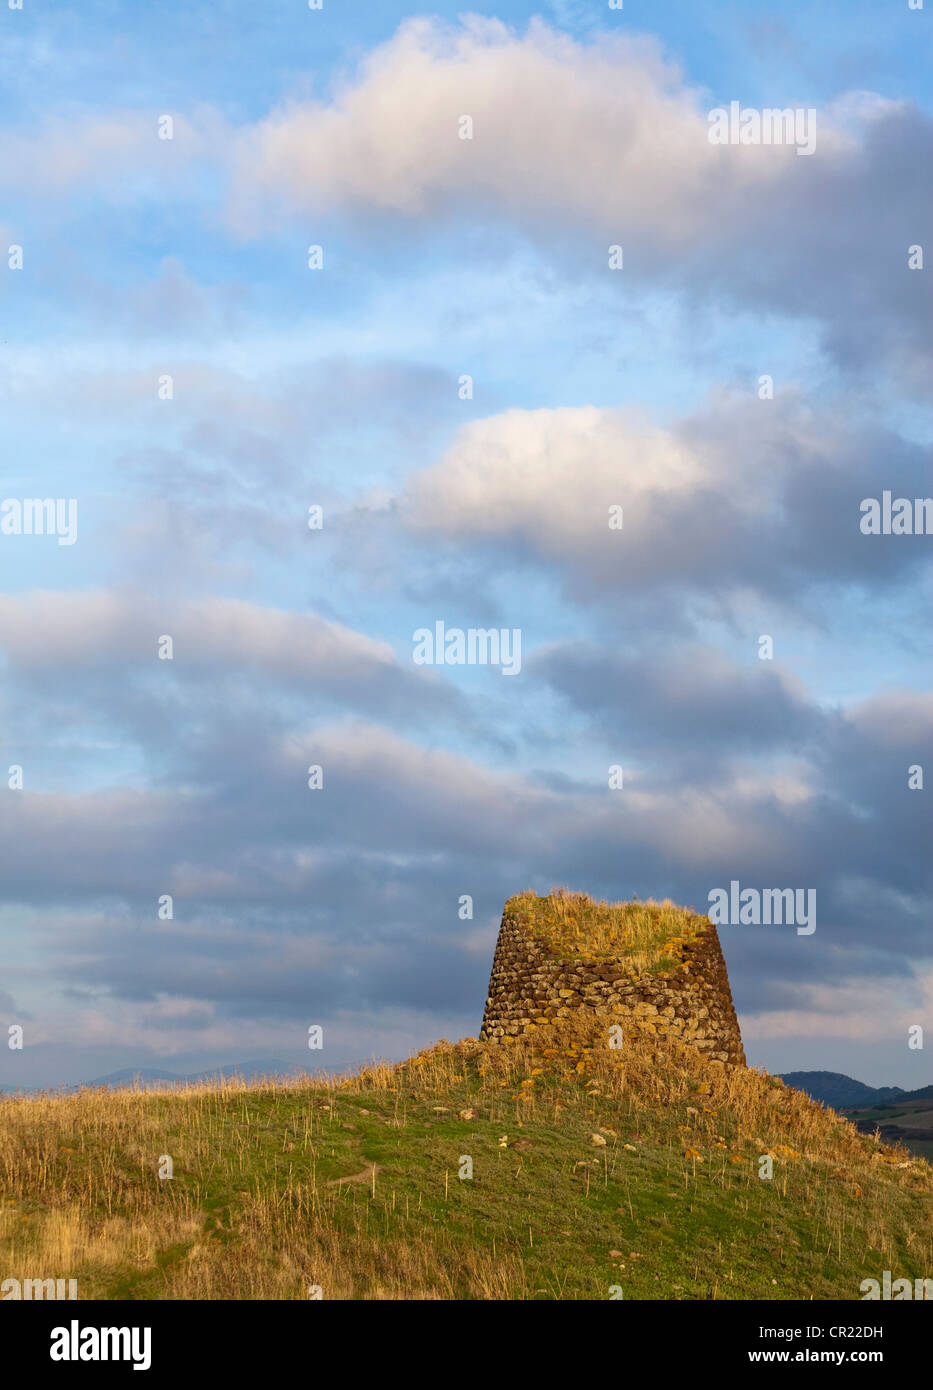 Stone structure on grassy hill - Stock Image